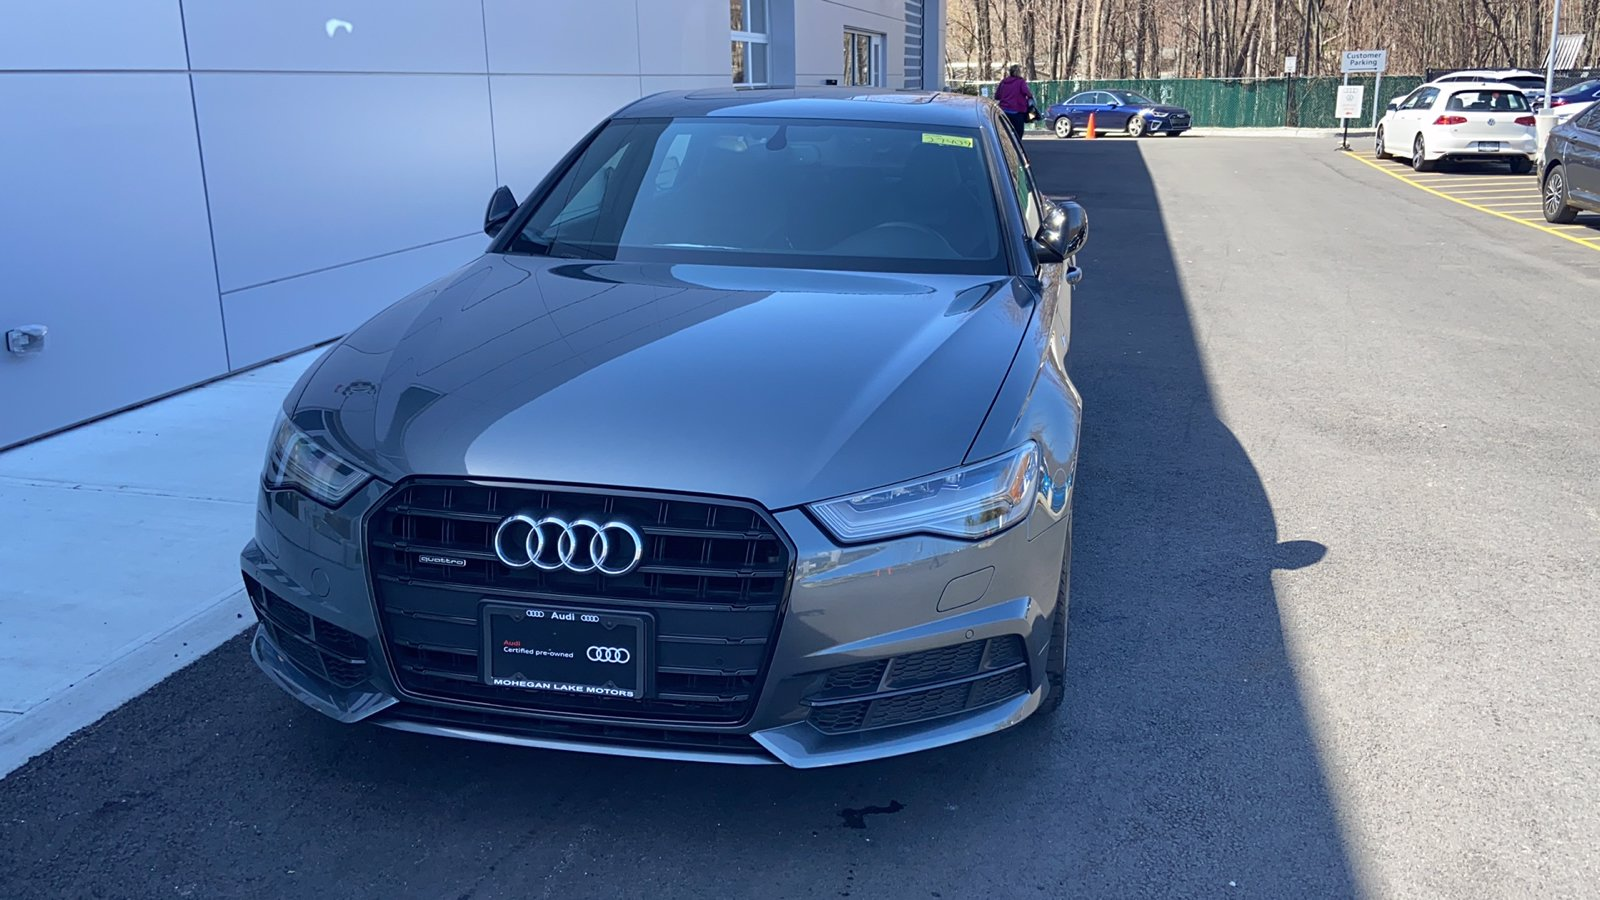 Used Audi A6 Mohegan Lake Ny